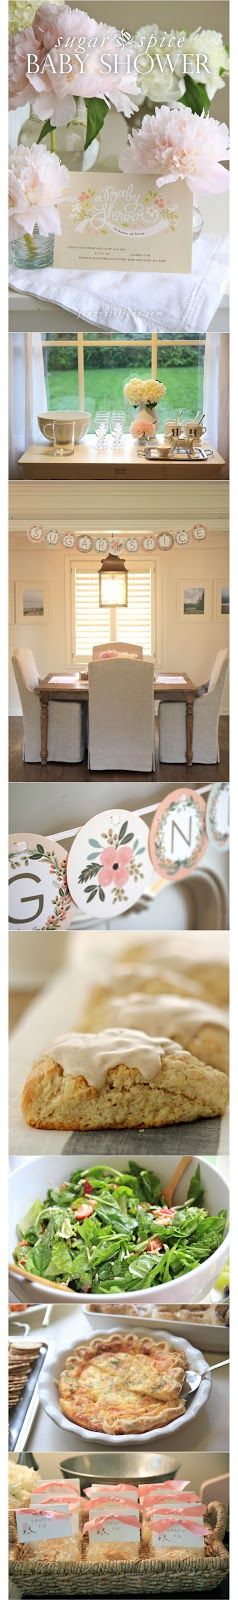 Baby Girl Shower   Brunch Menu, Peonies & Mini Pies Like the drink station, sweetie pie party favors,